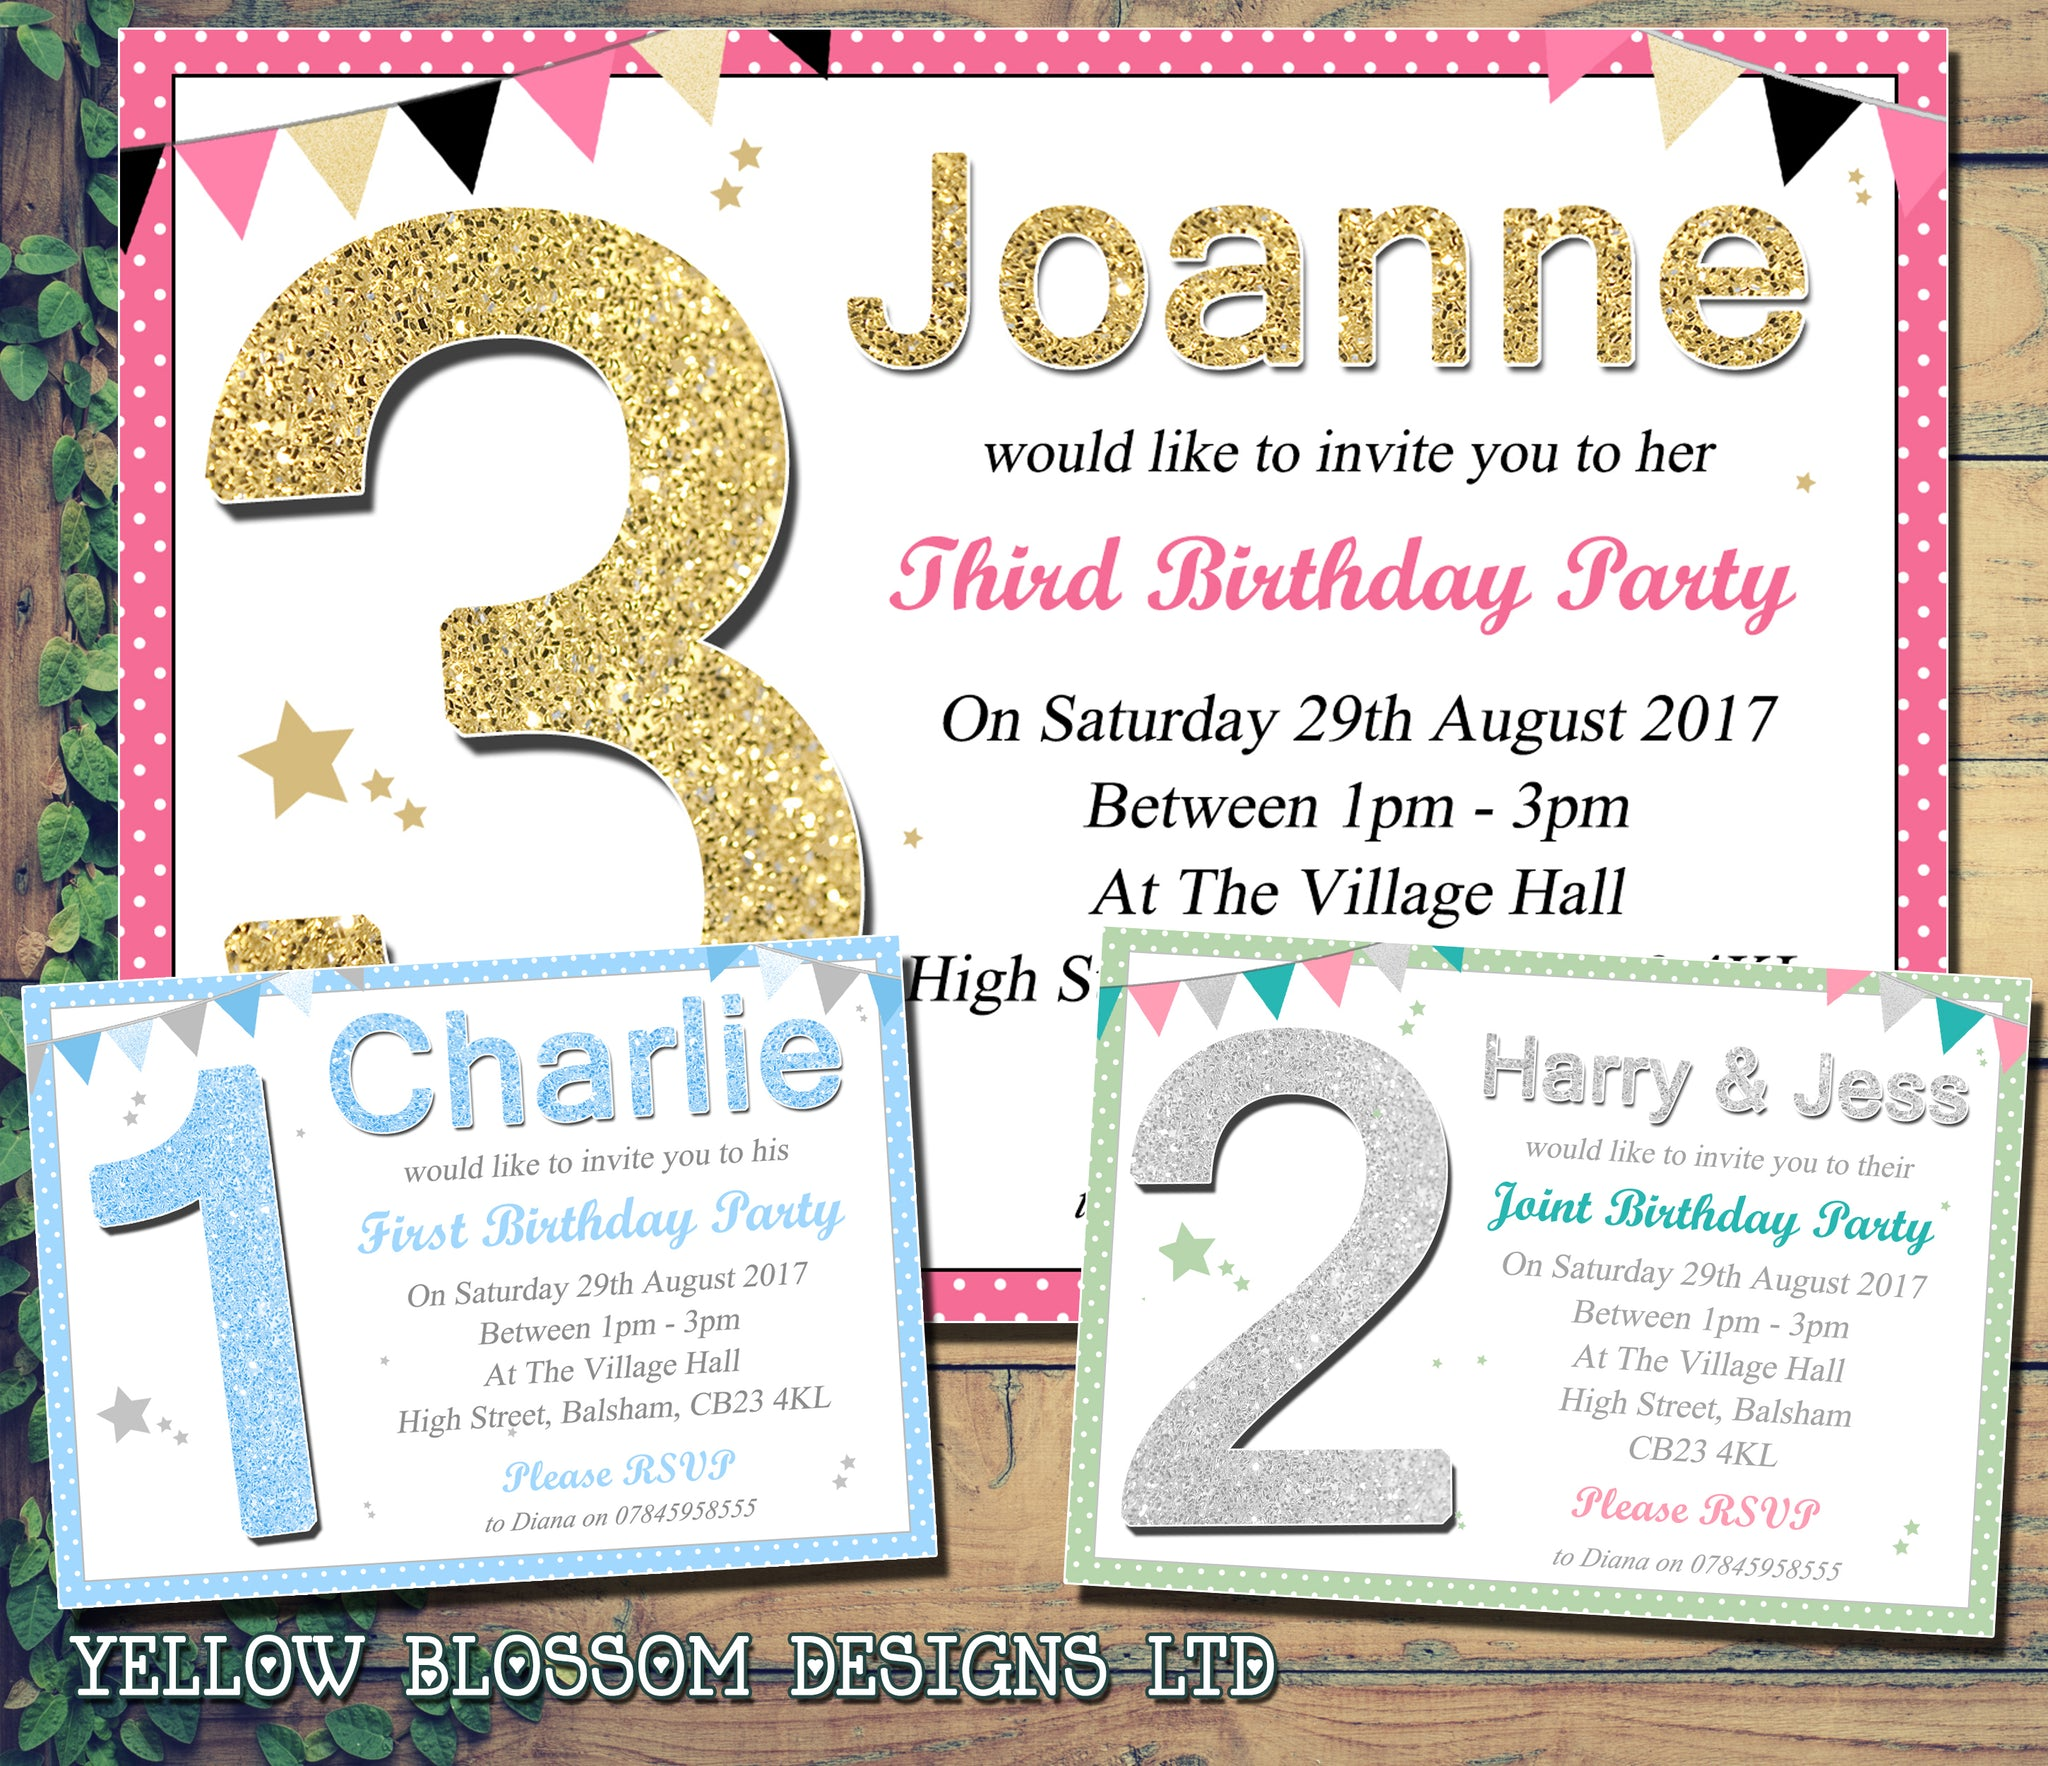 Childrens birthday invitations yellowblossomdesignsltd party invitations birthday invites boy girl joint party twins unisex printed childrens kids child stopboris Images